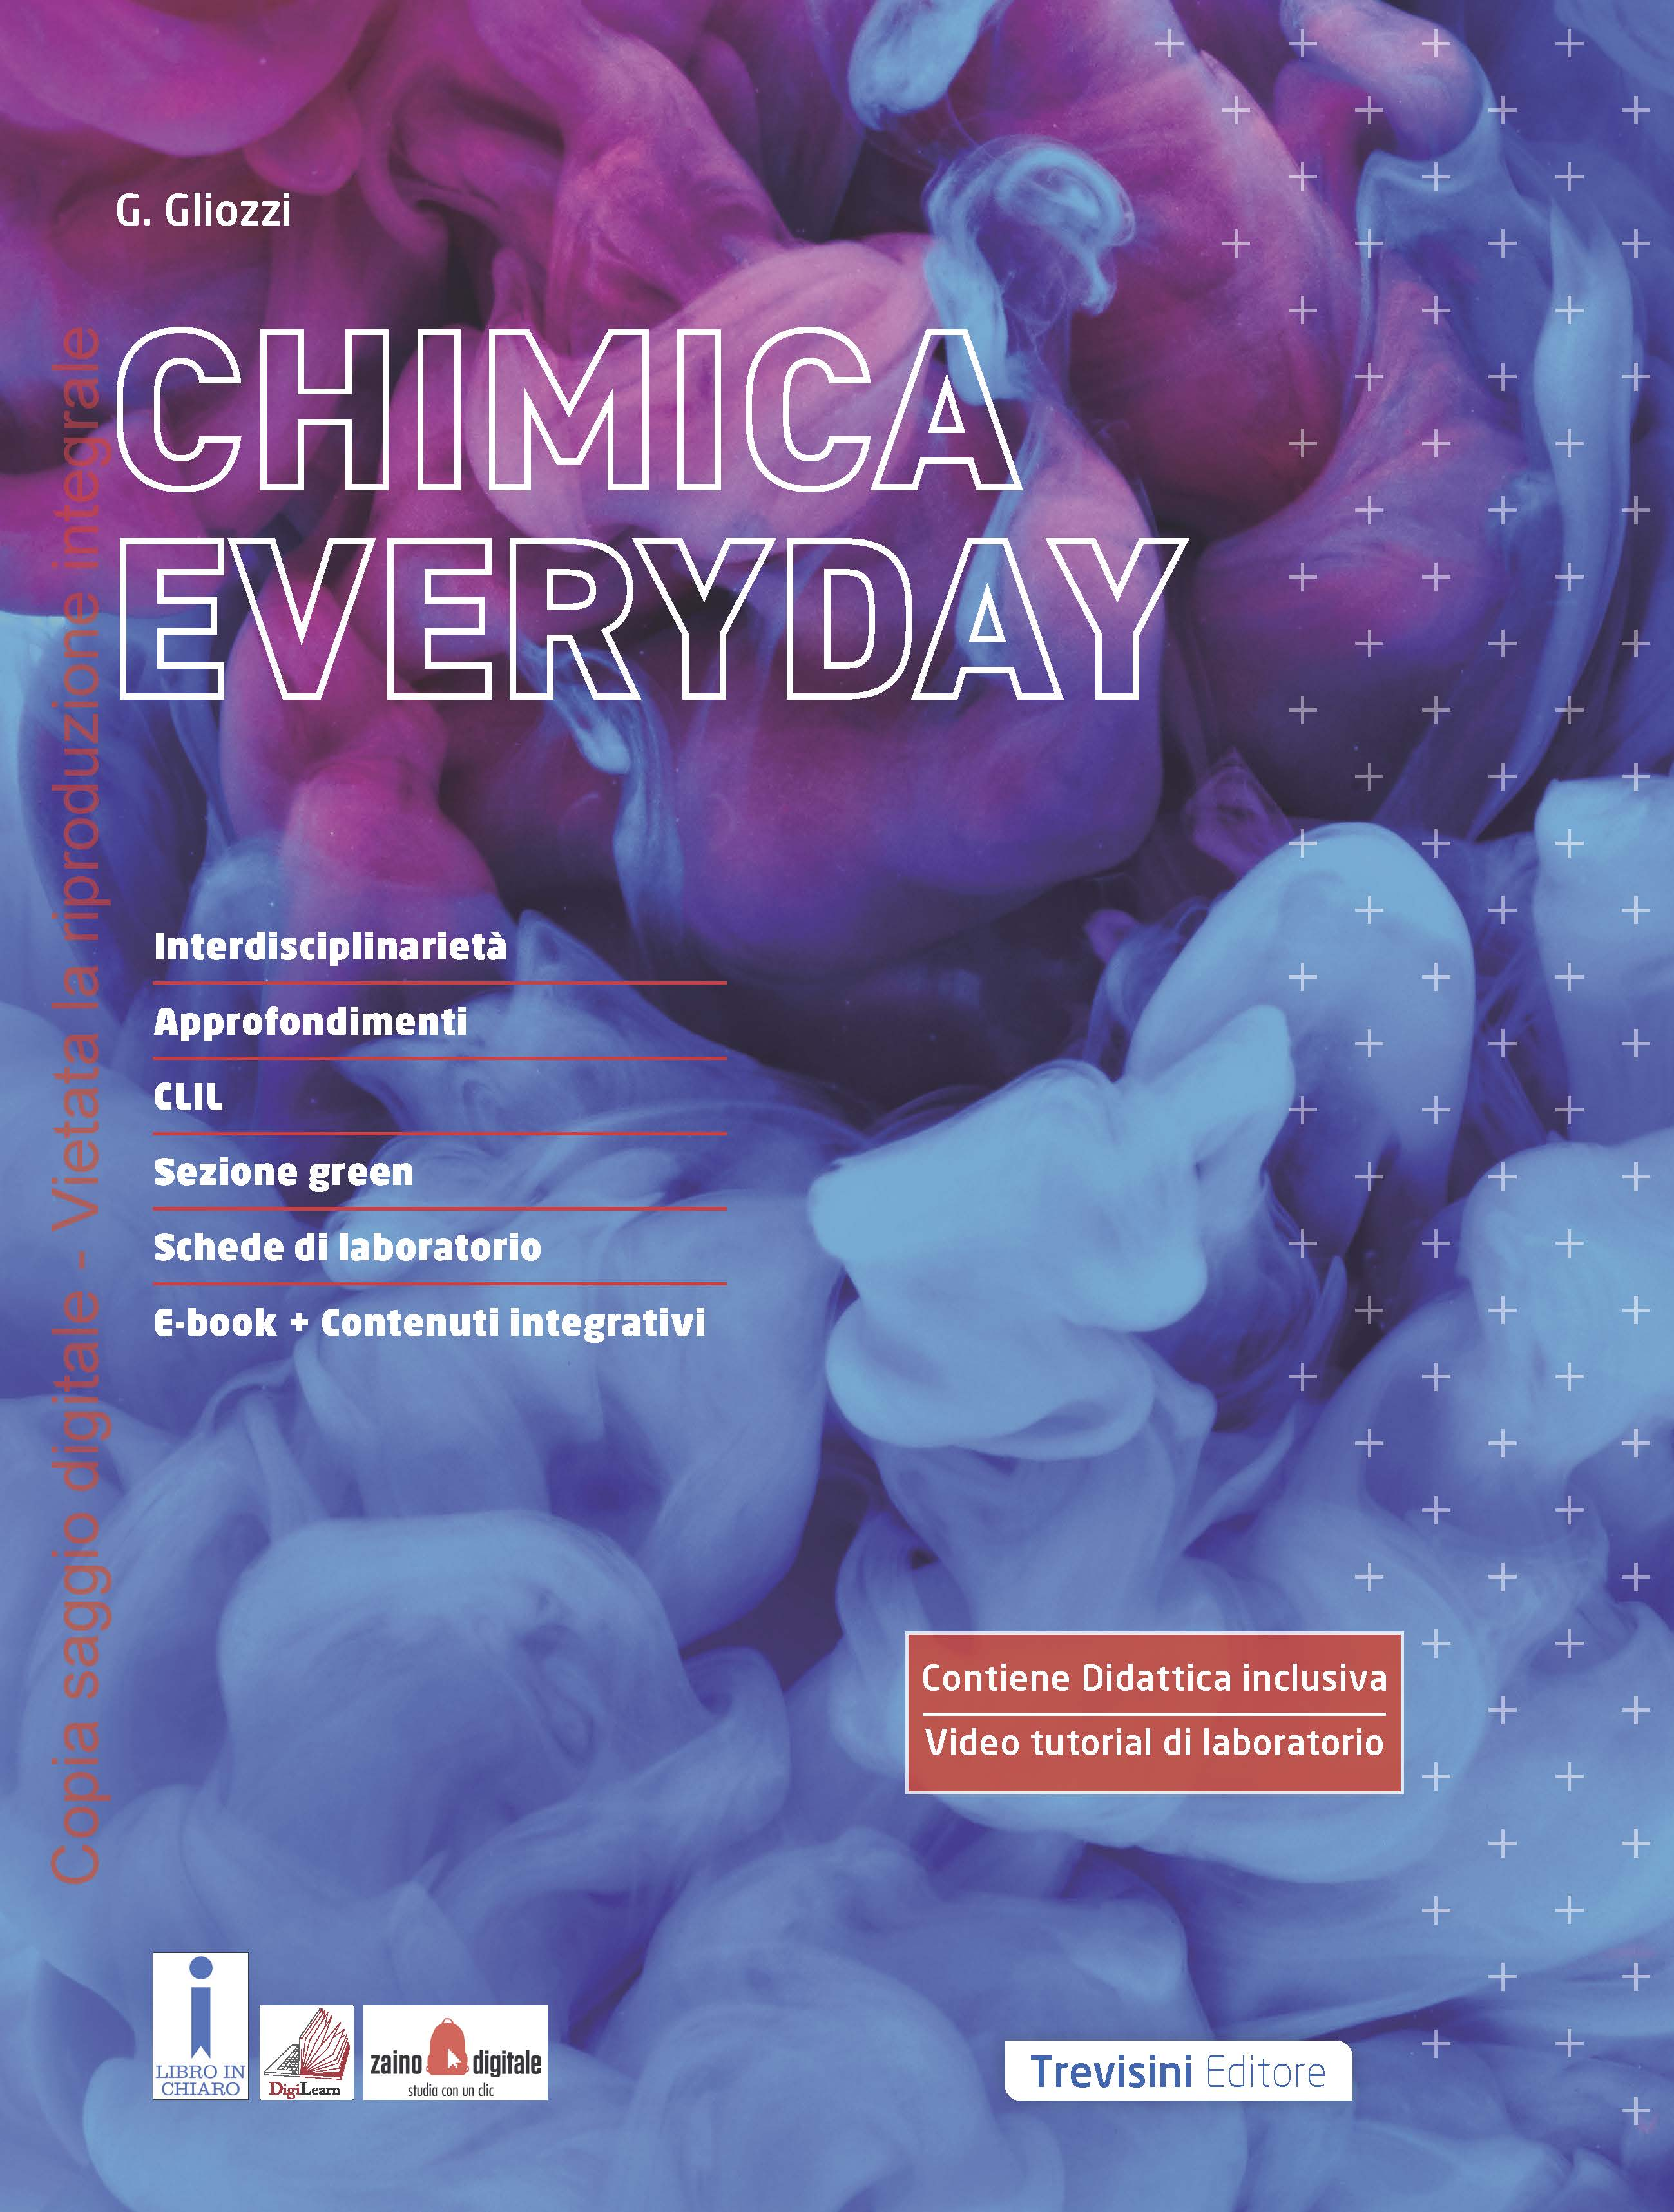 Chimica everyday